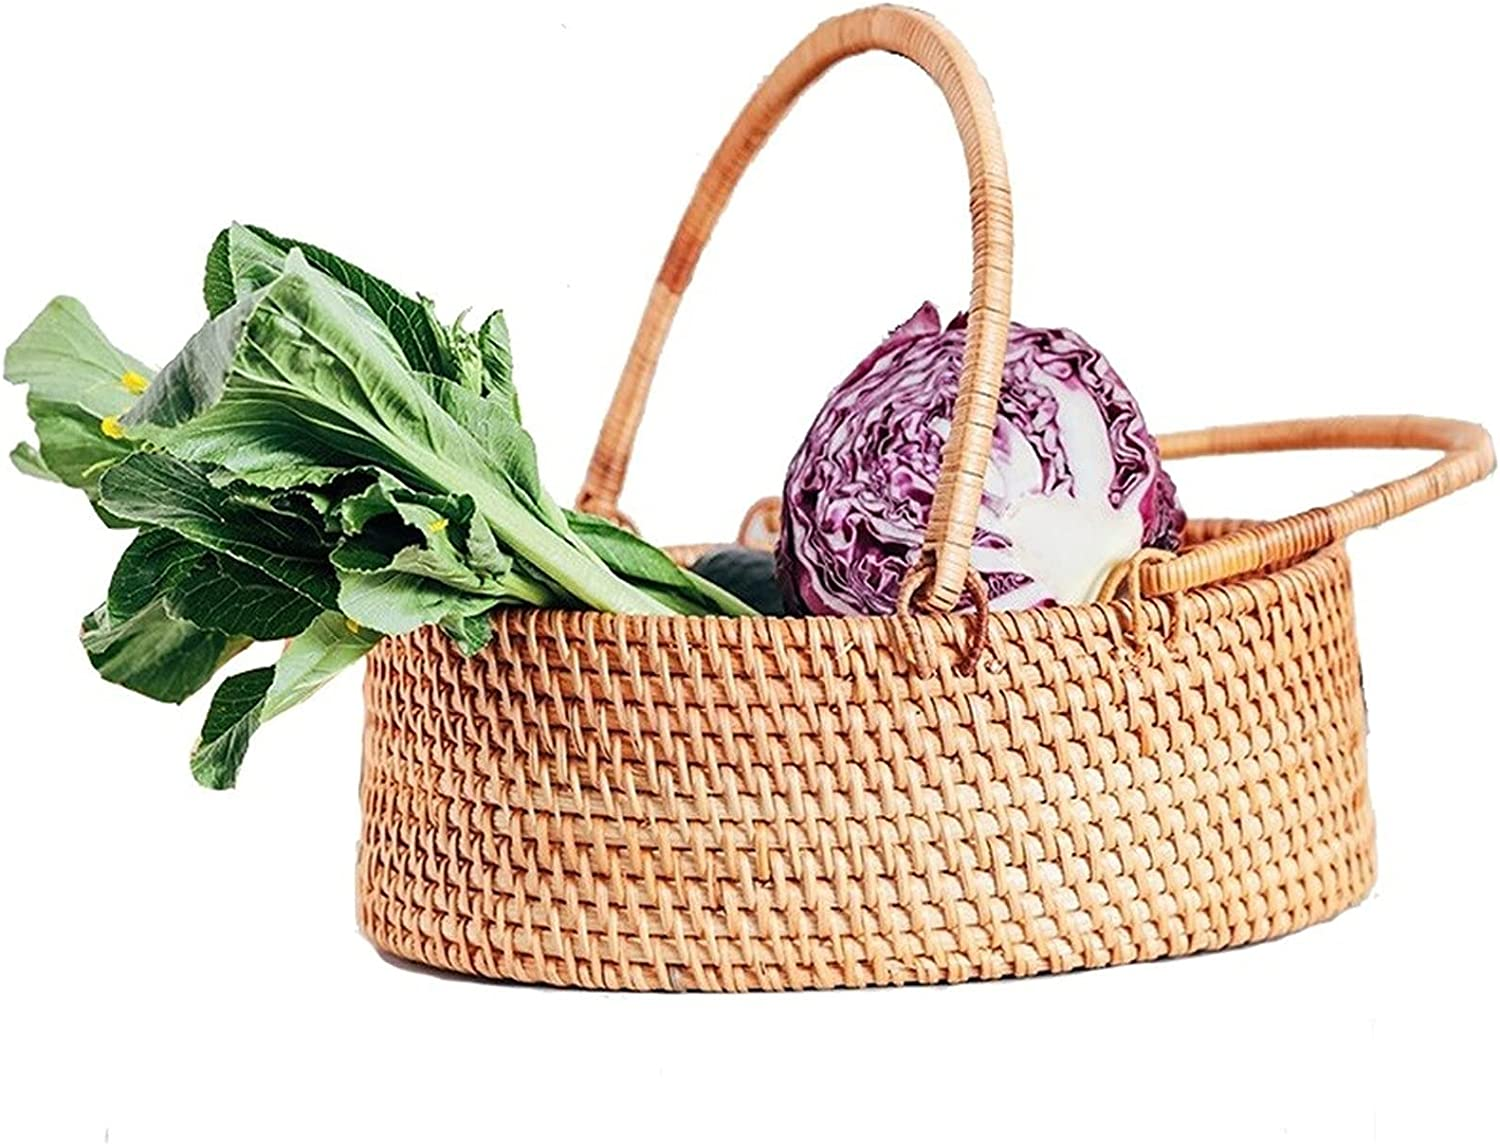 ZHM Handmade 67% OFF of fixed price Rattan Courtyard Outdoor safety Picnic Basket Portab with